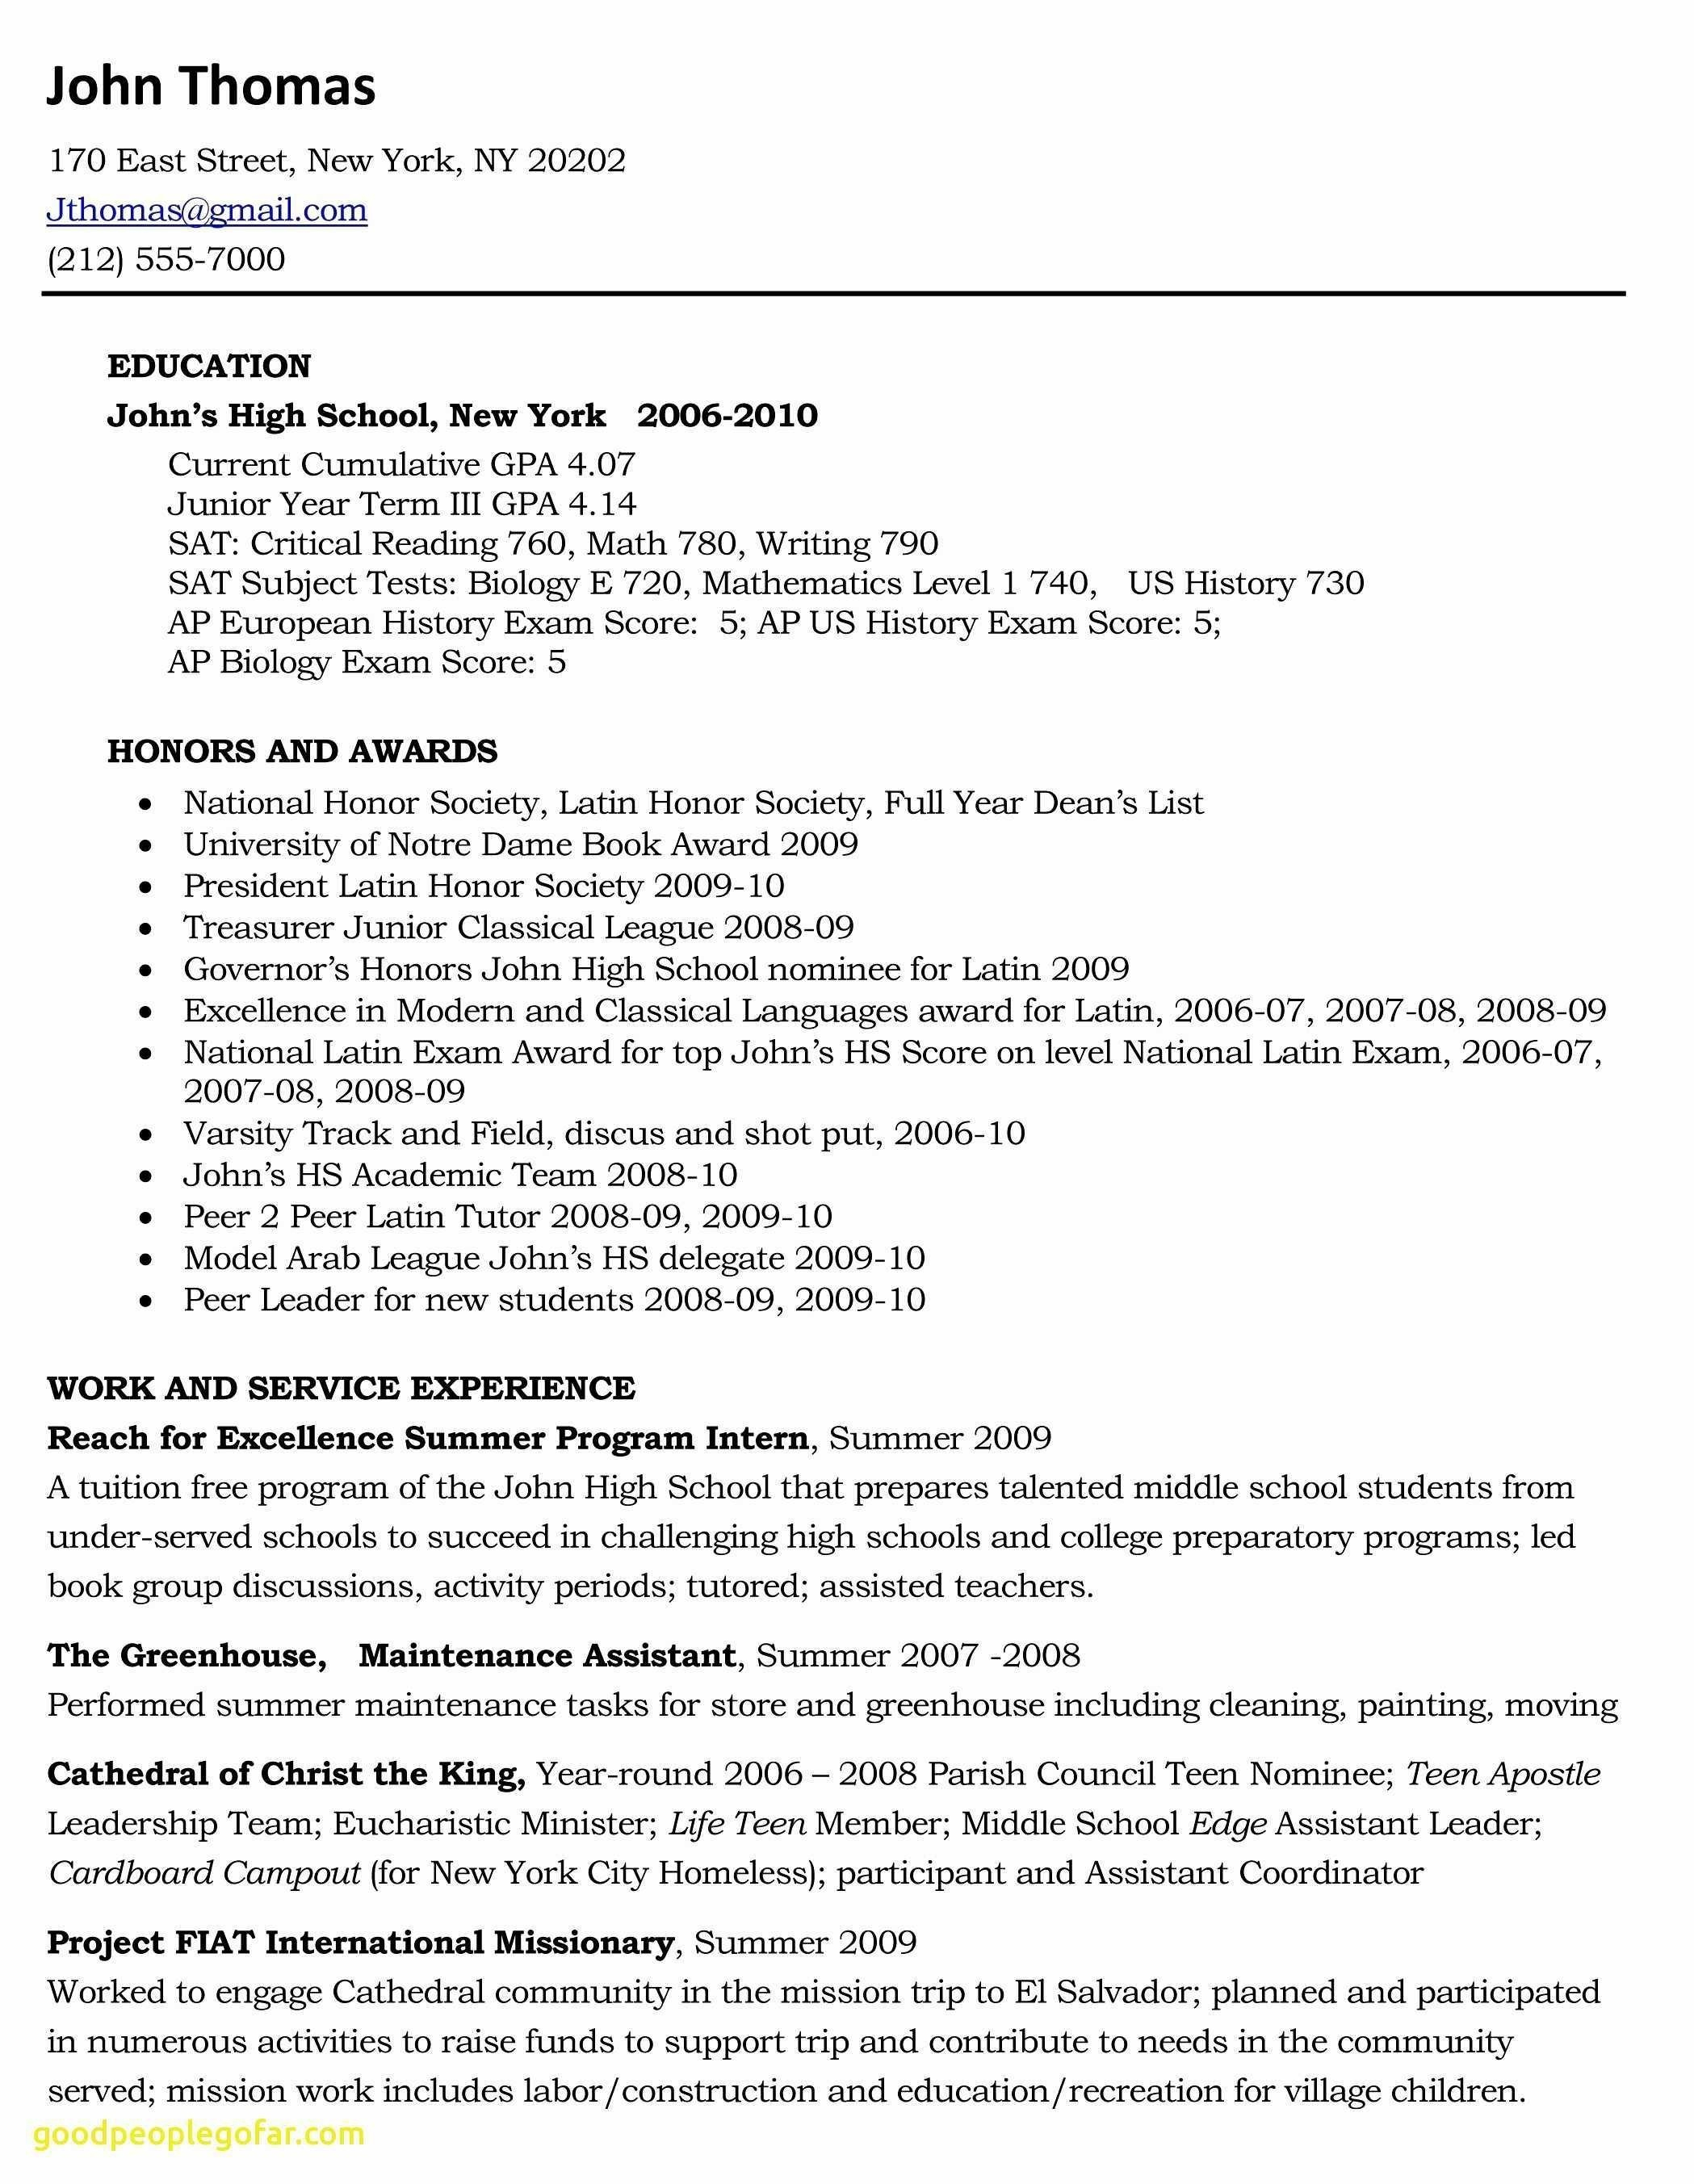 Sorority Rush Resume Template - How to Do A Good Resume Save Make Free Resume Best Fresh Entry Level